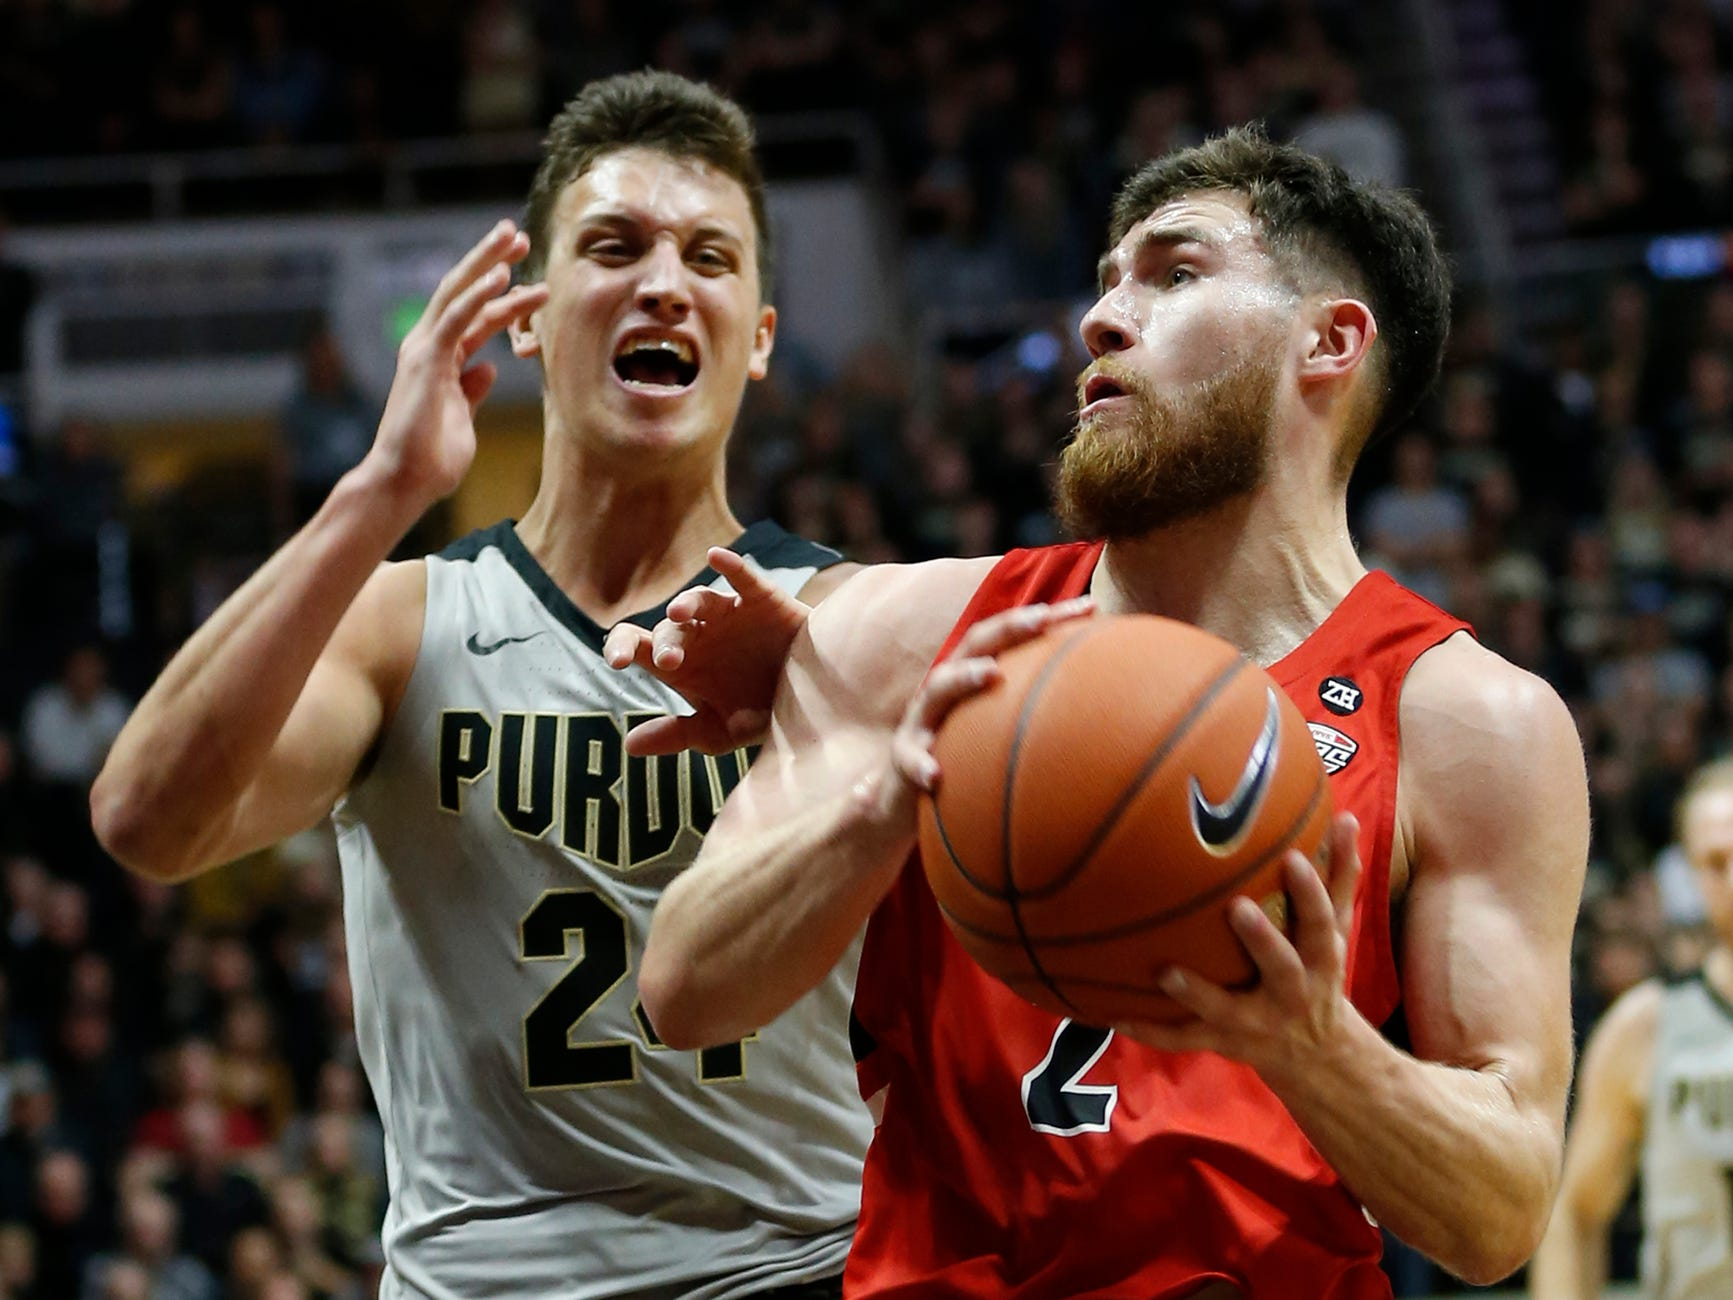 Tayler Persons of Ball State gets past Grady Eifert of Purdue for a shot Saturday, November 10, 2018, at Mackey Arena. Purdue defeated Ball State 84-75.